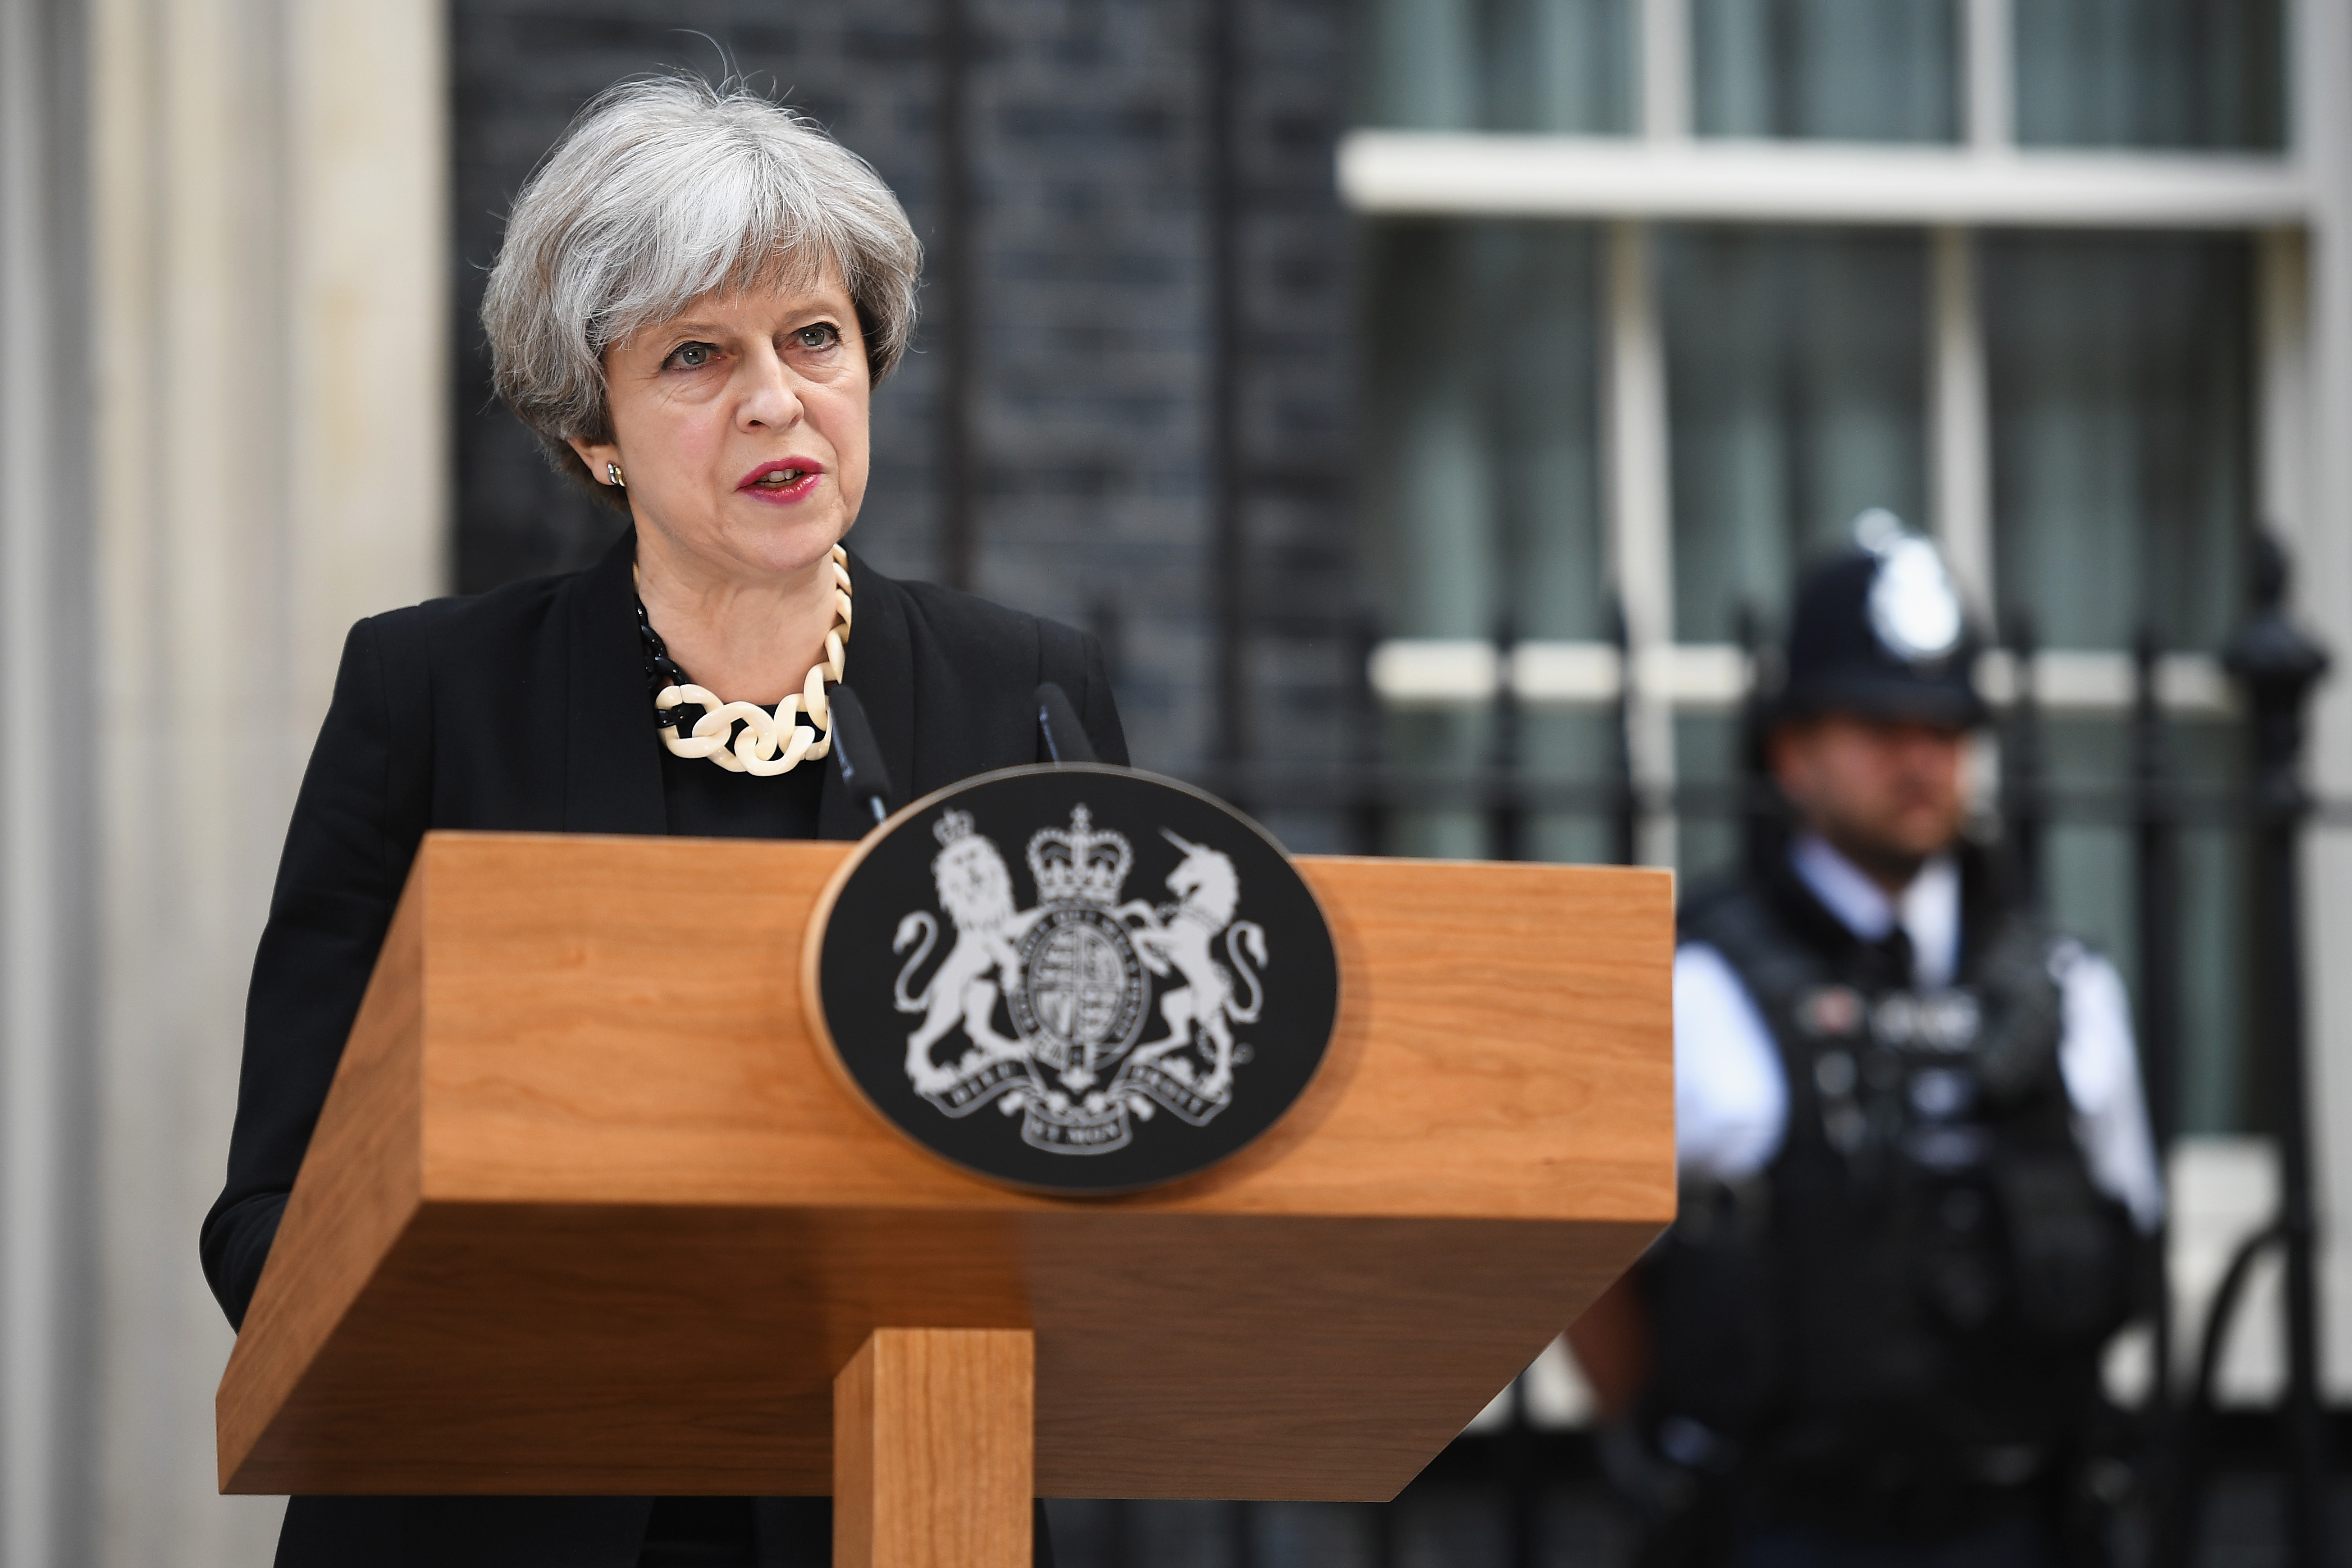 Britain's Prime Minister Theresa May addresses the media as she makes a statement, following a COBRA meeting in response to last night's London terror attack, at 10 Downing Street on June 4, 2017 in London, England.